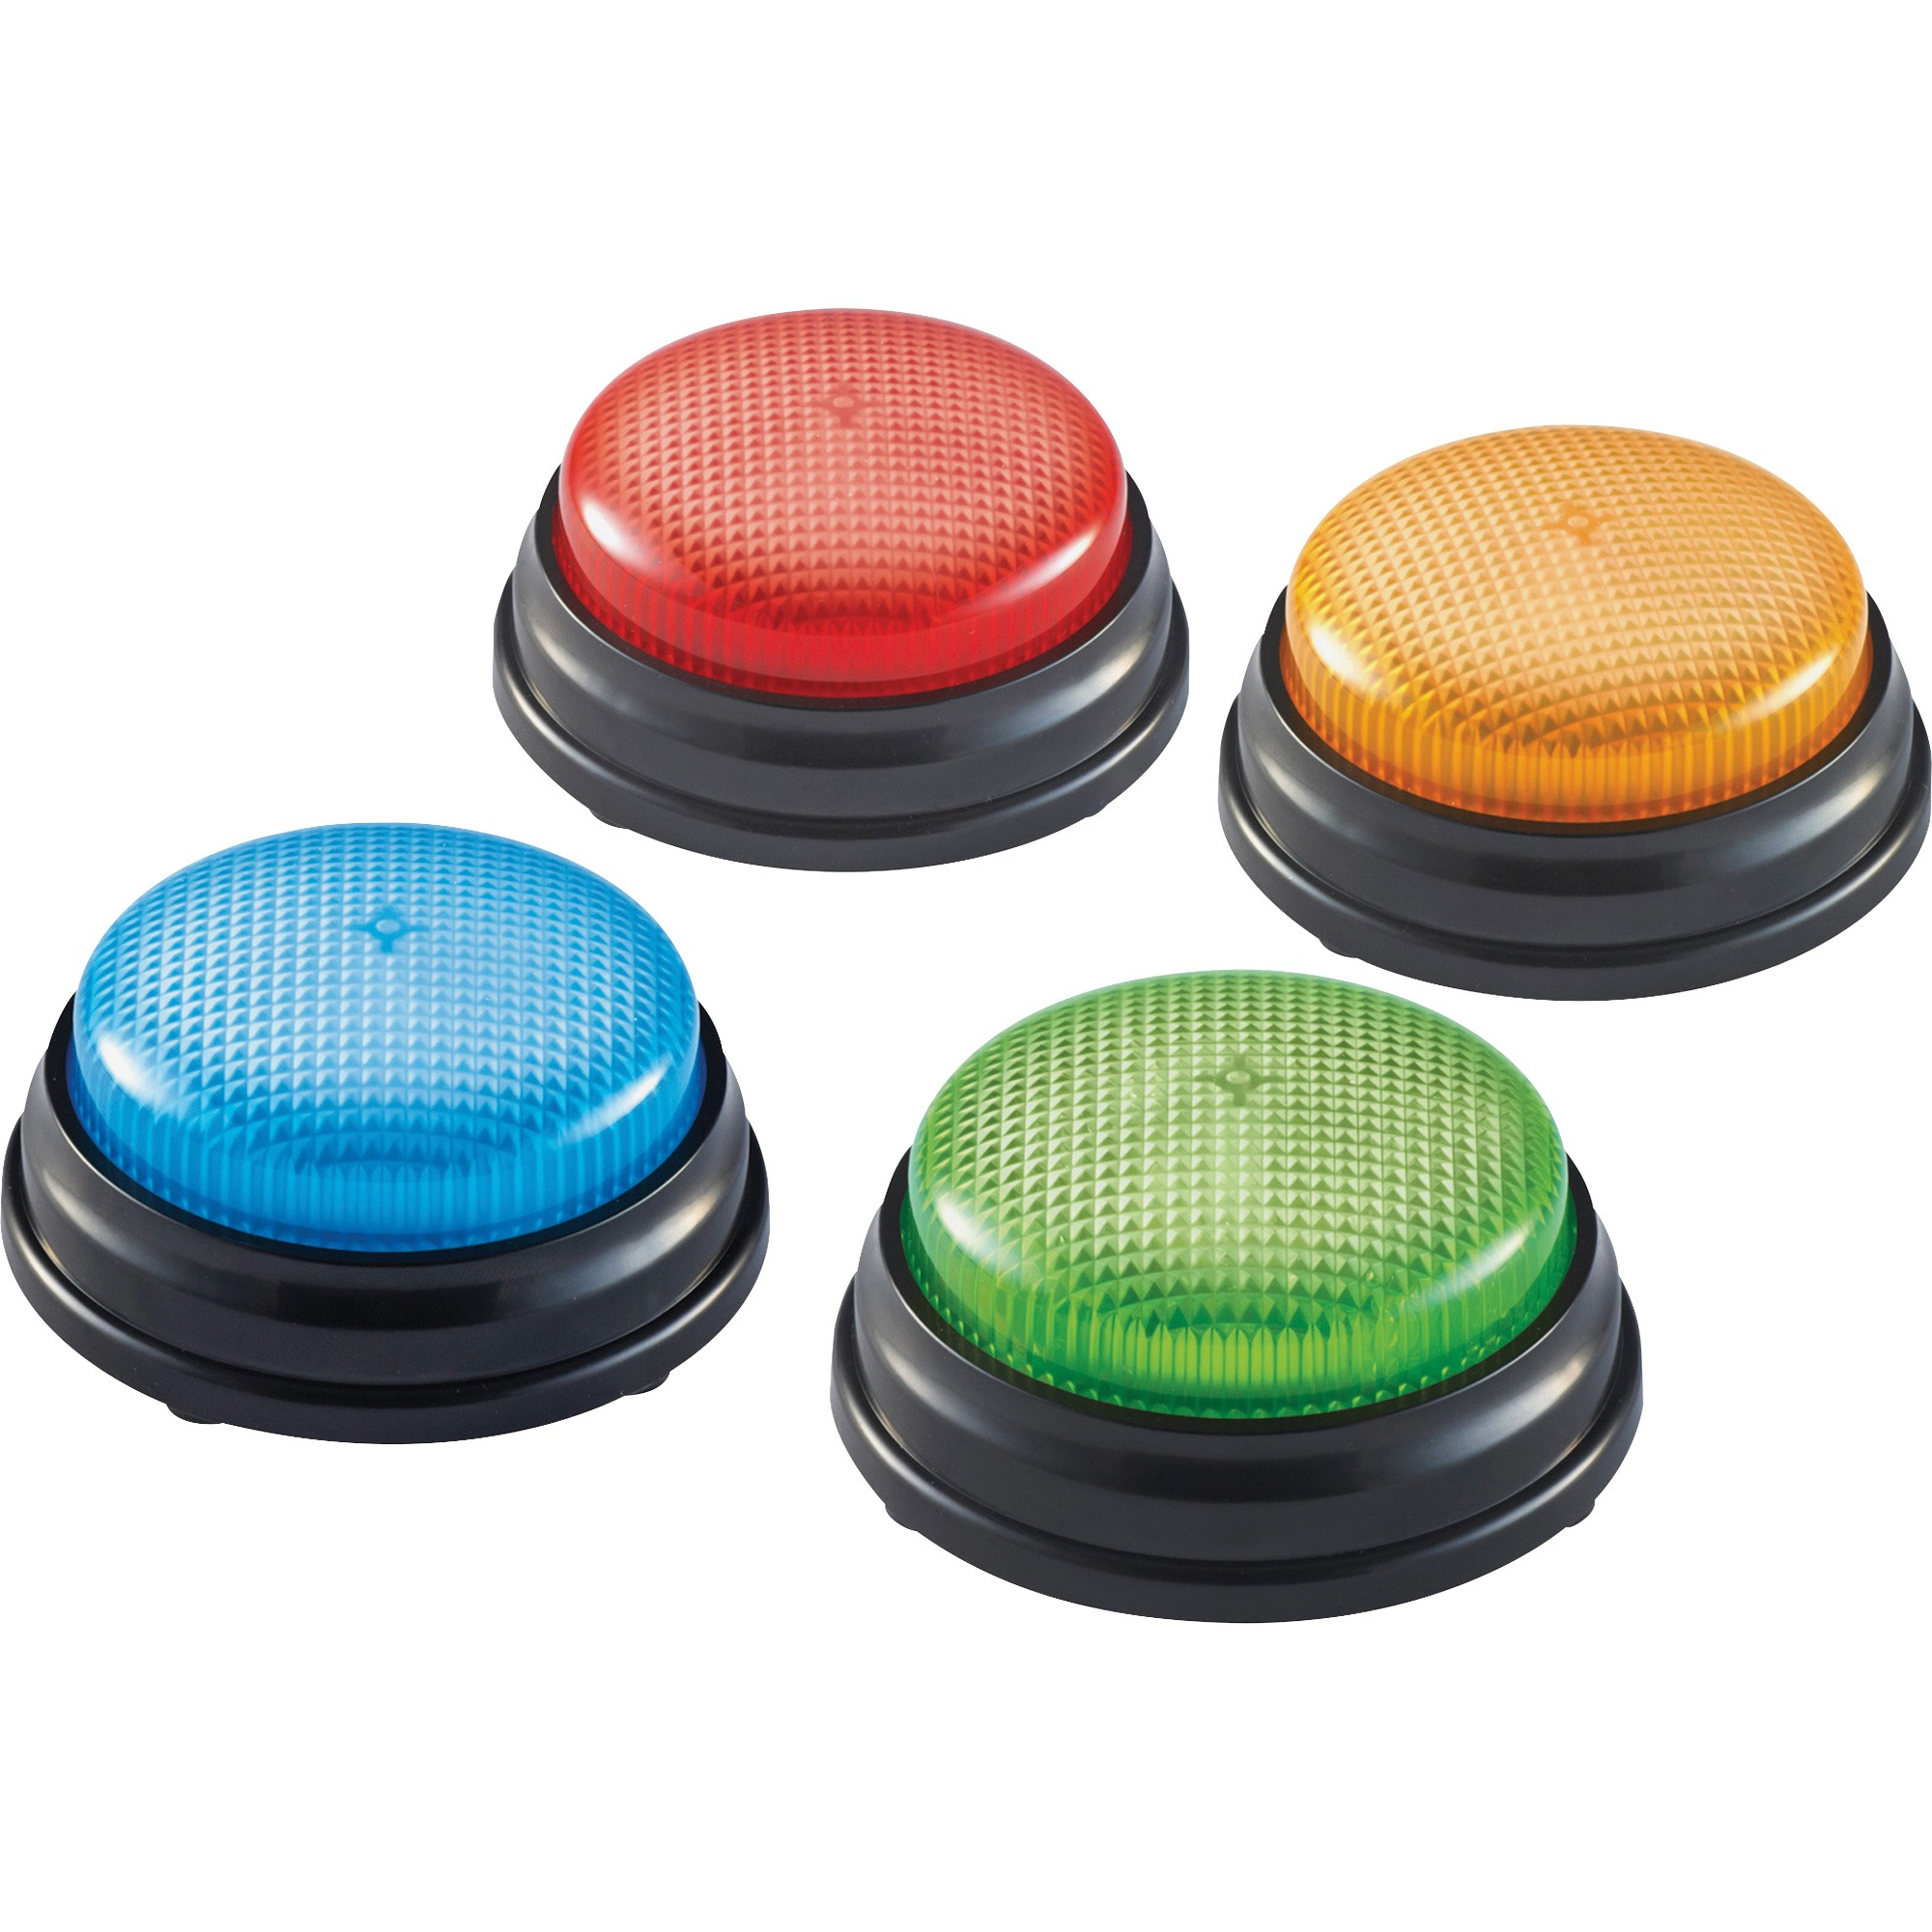 Lights And Sounds Answer Buzzer Set Of 4